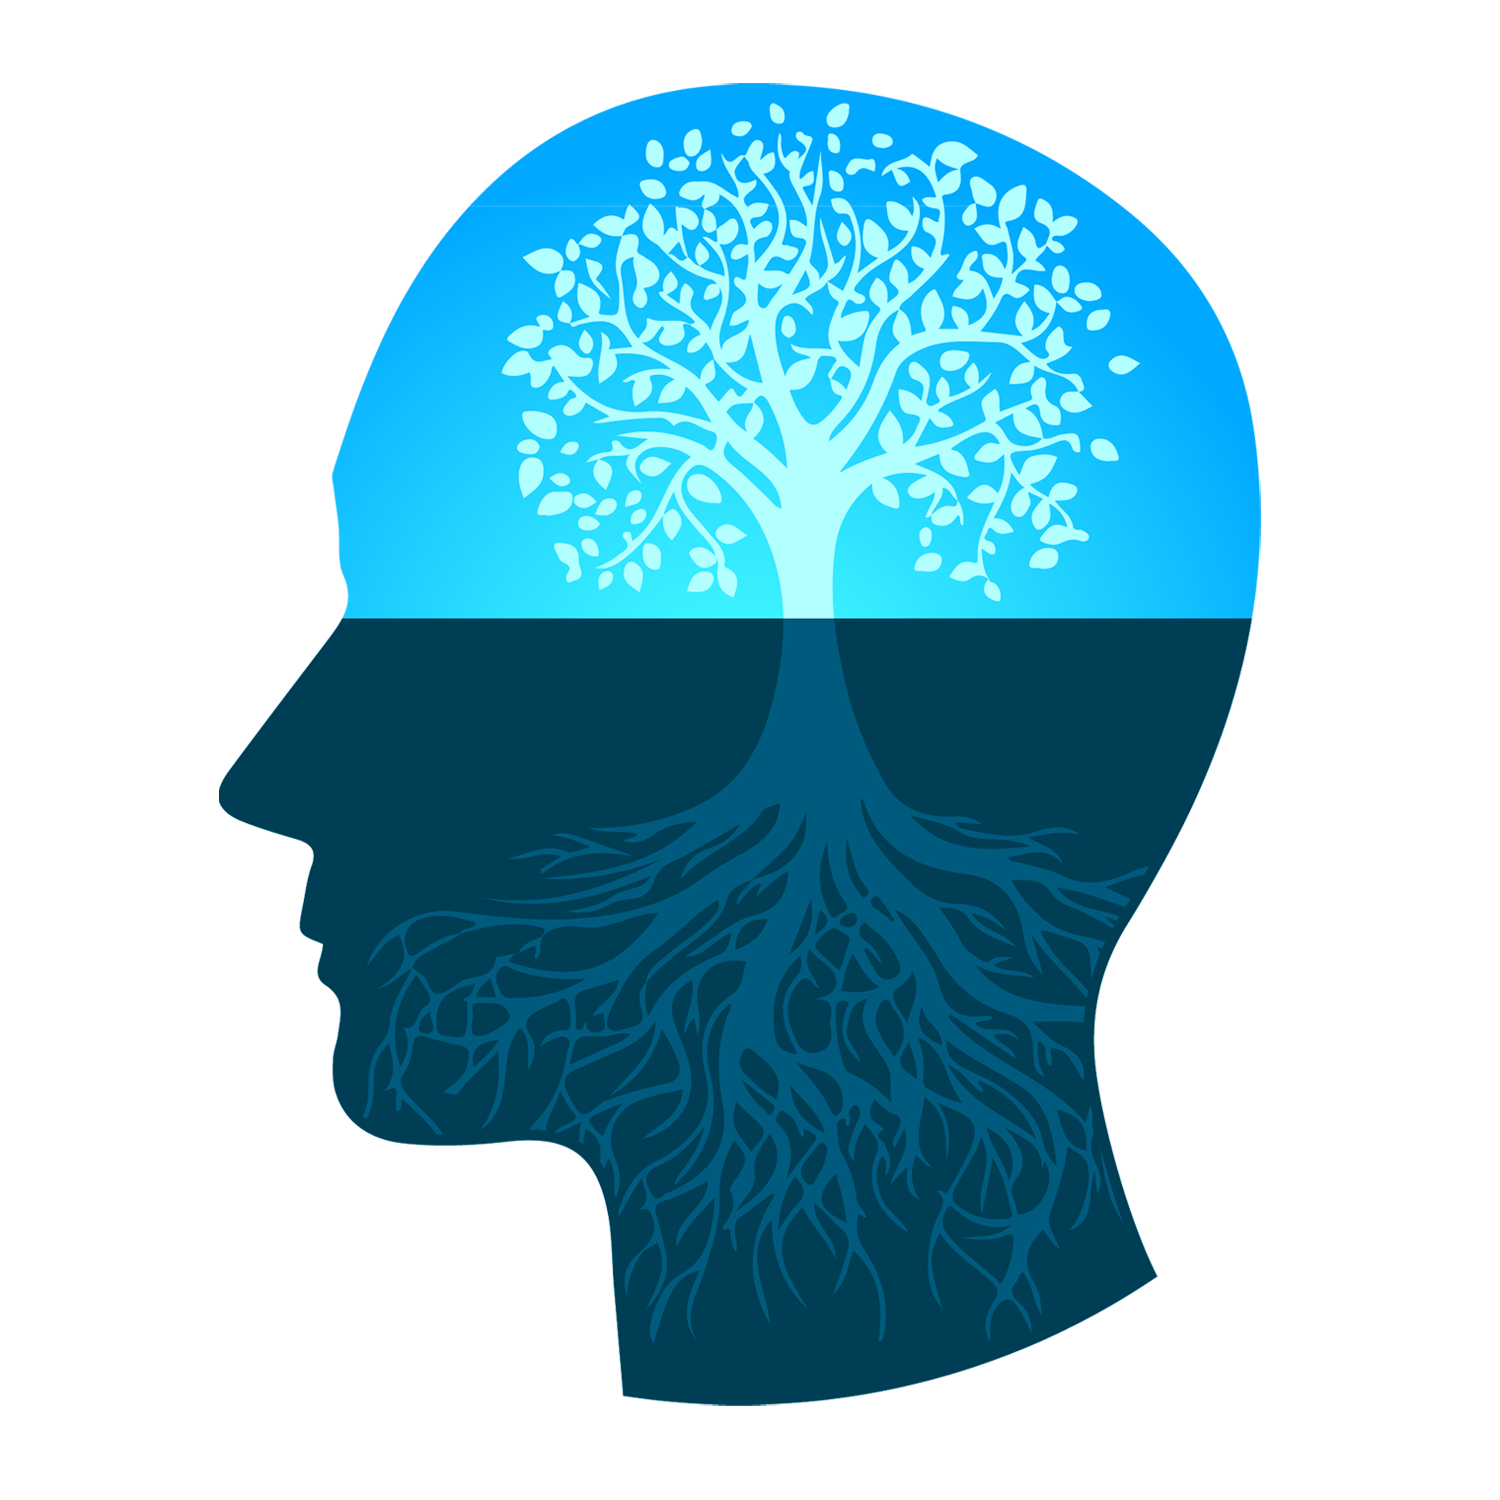 Tree clipart memories. Can our mindset change